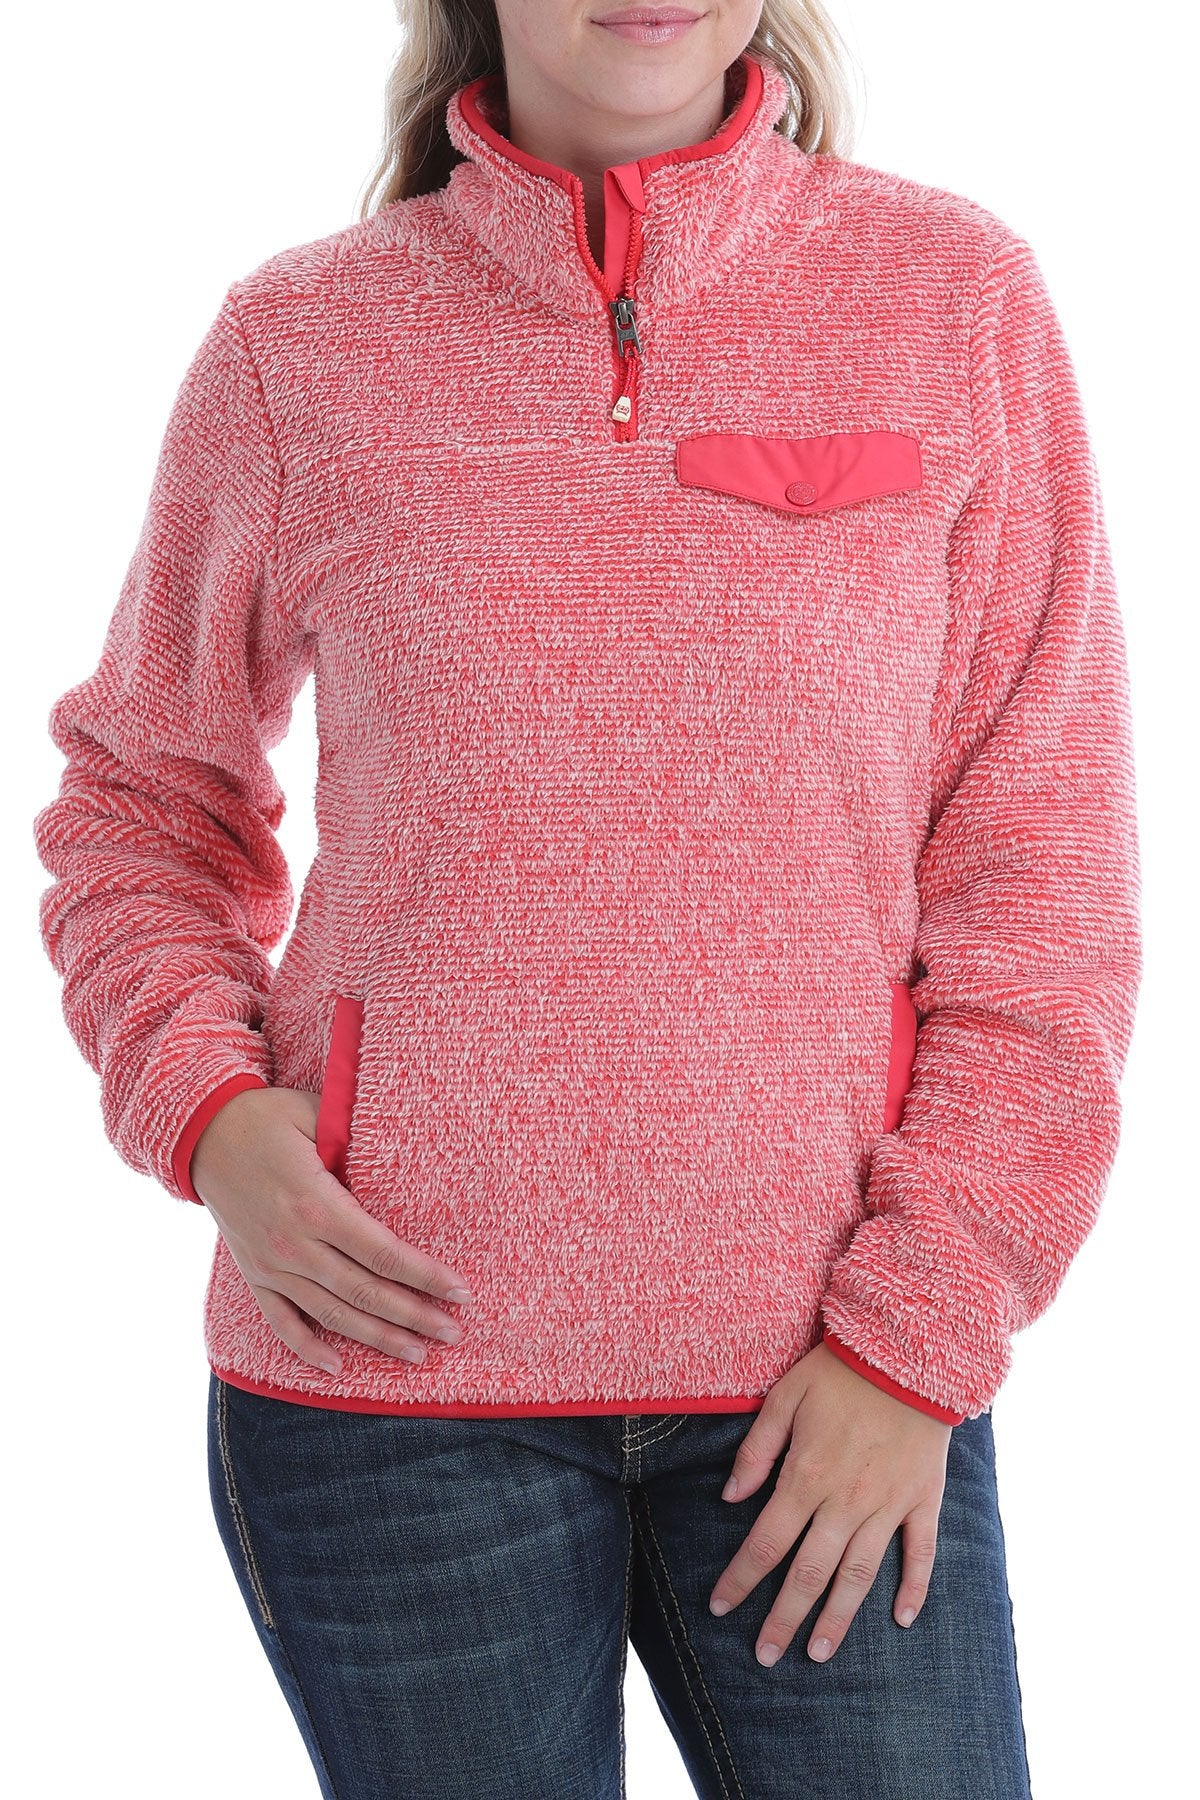 LADIES CORAL 1/4 ZIP FLEECE PULLOVER